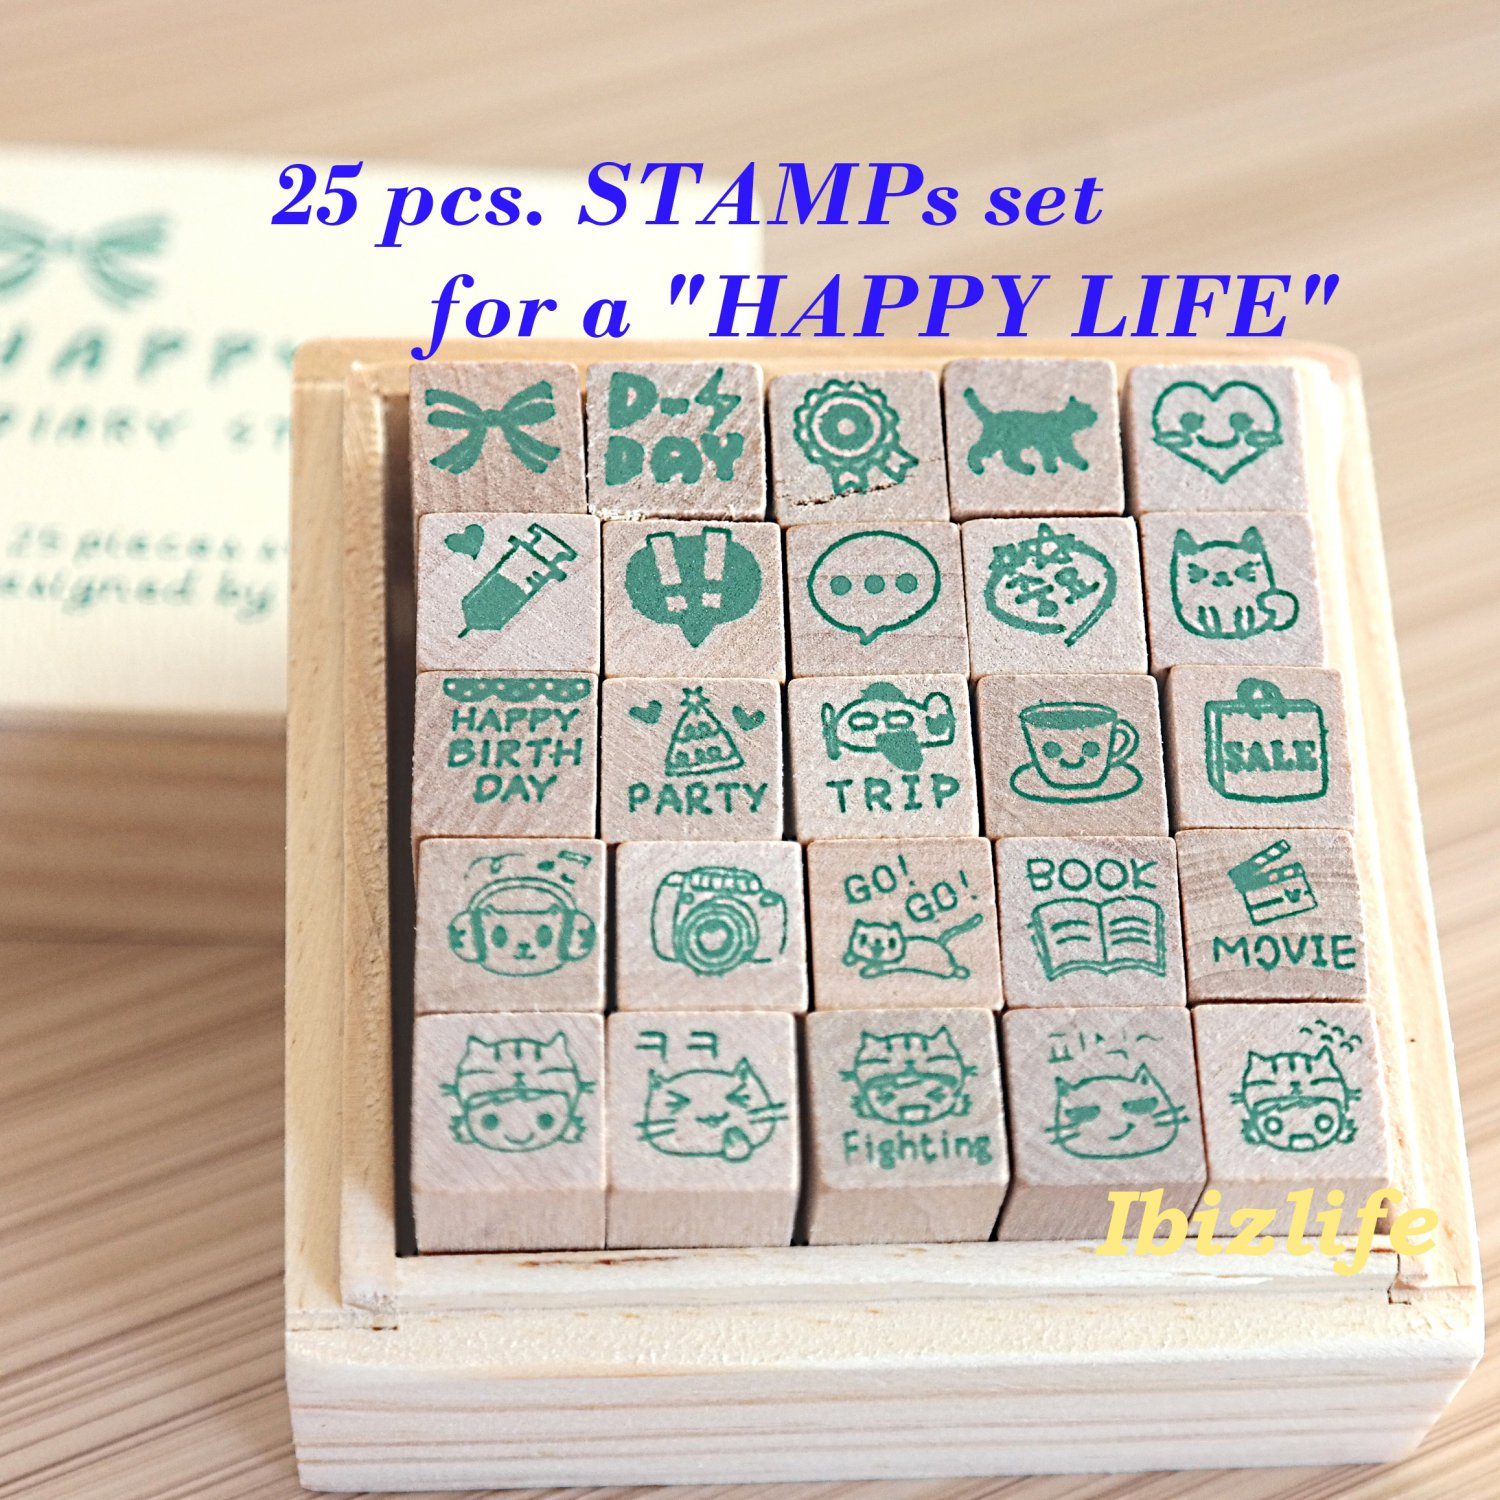 25-pcs stamps sets in a wooden box for a happy life (WS06)